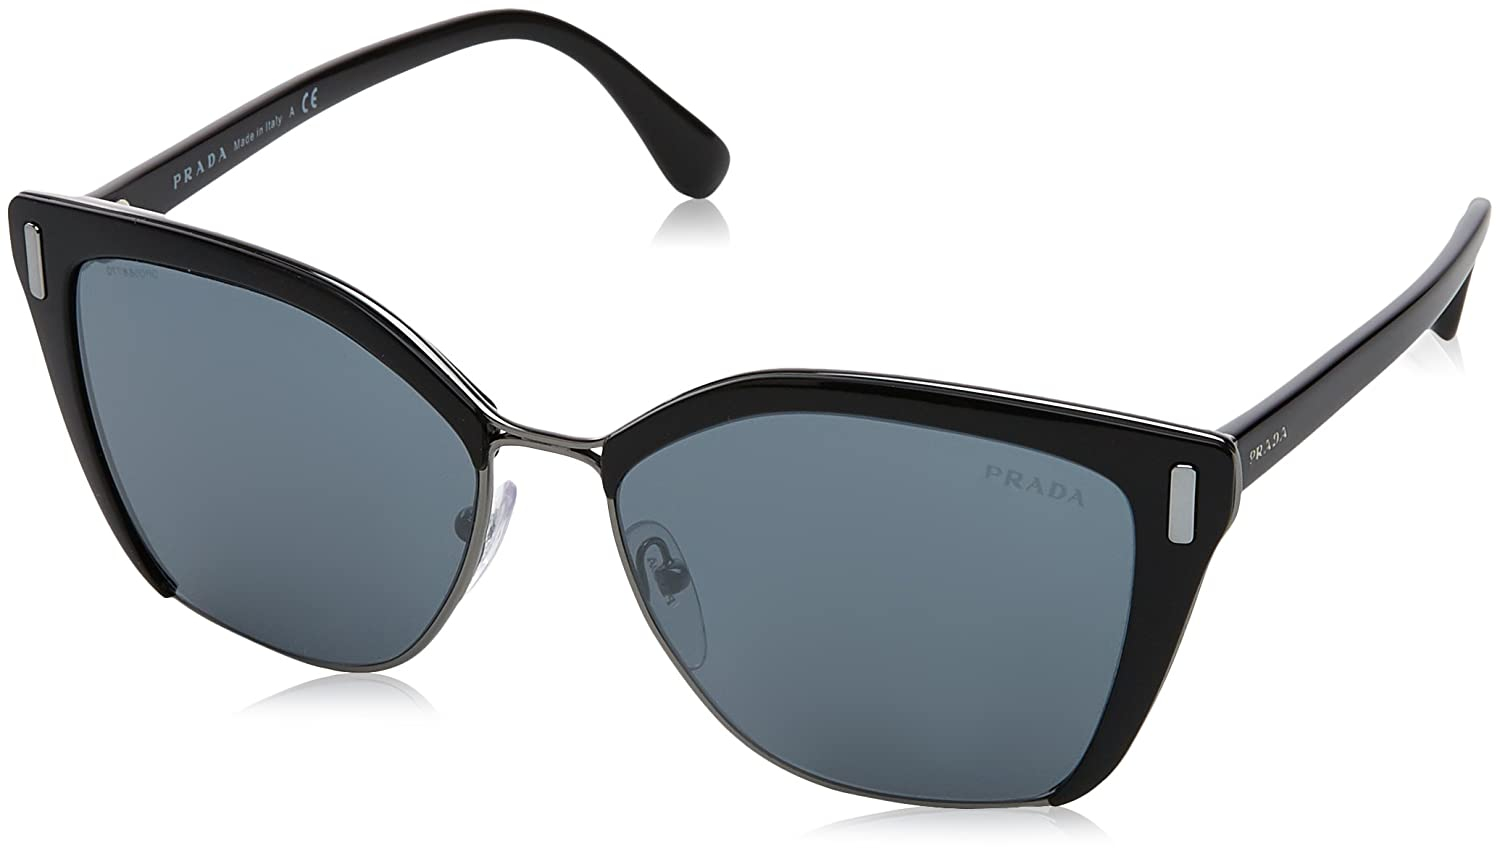 b4b4392e65 Amazon.com  Prada Women s 0PR 56TS Black Gunmetal Grey Mirror Black  Sunglasses  Prada  Clothing